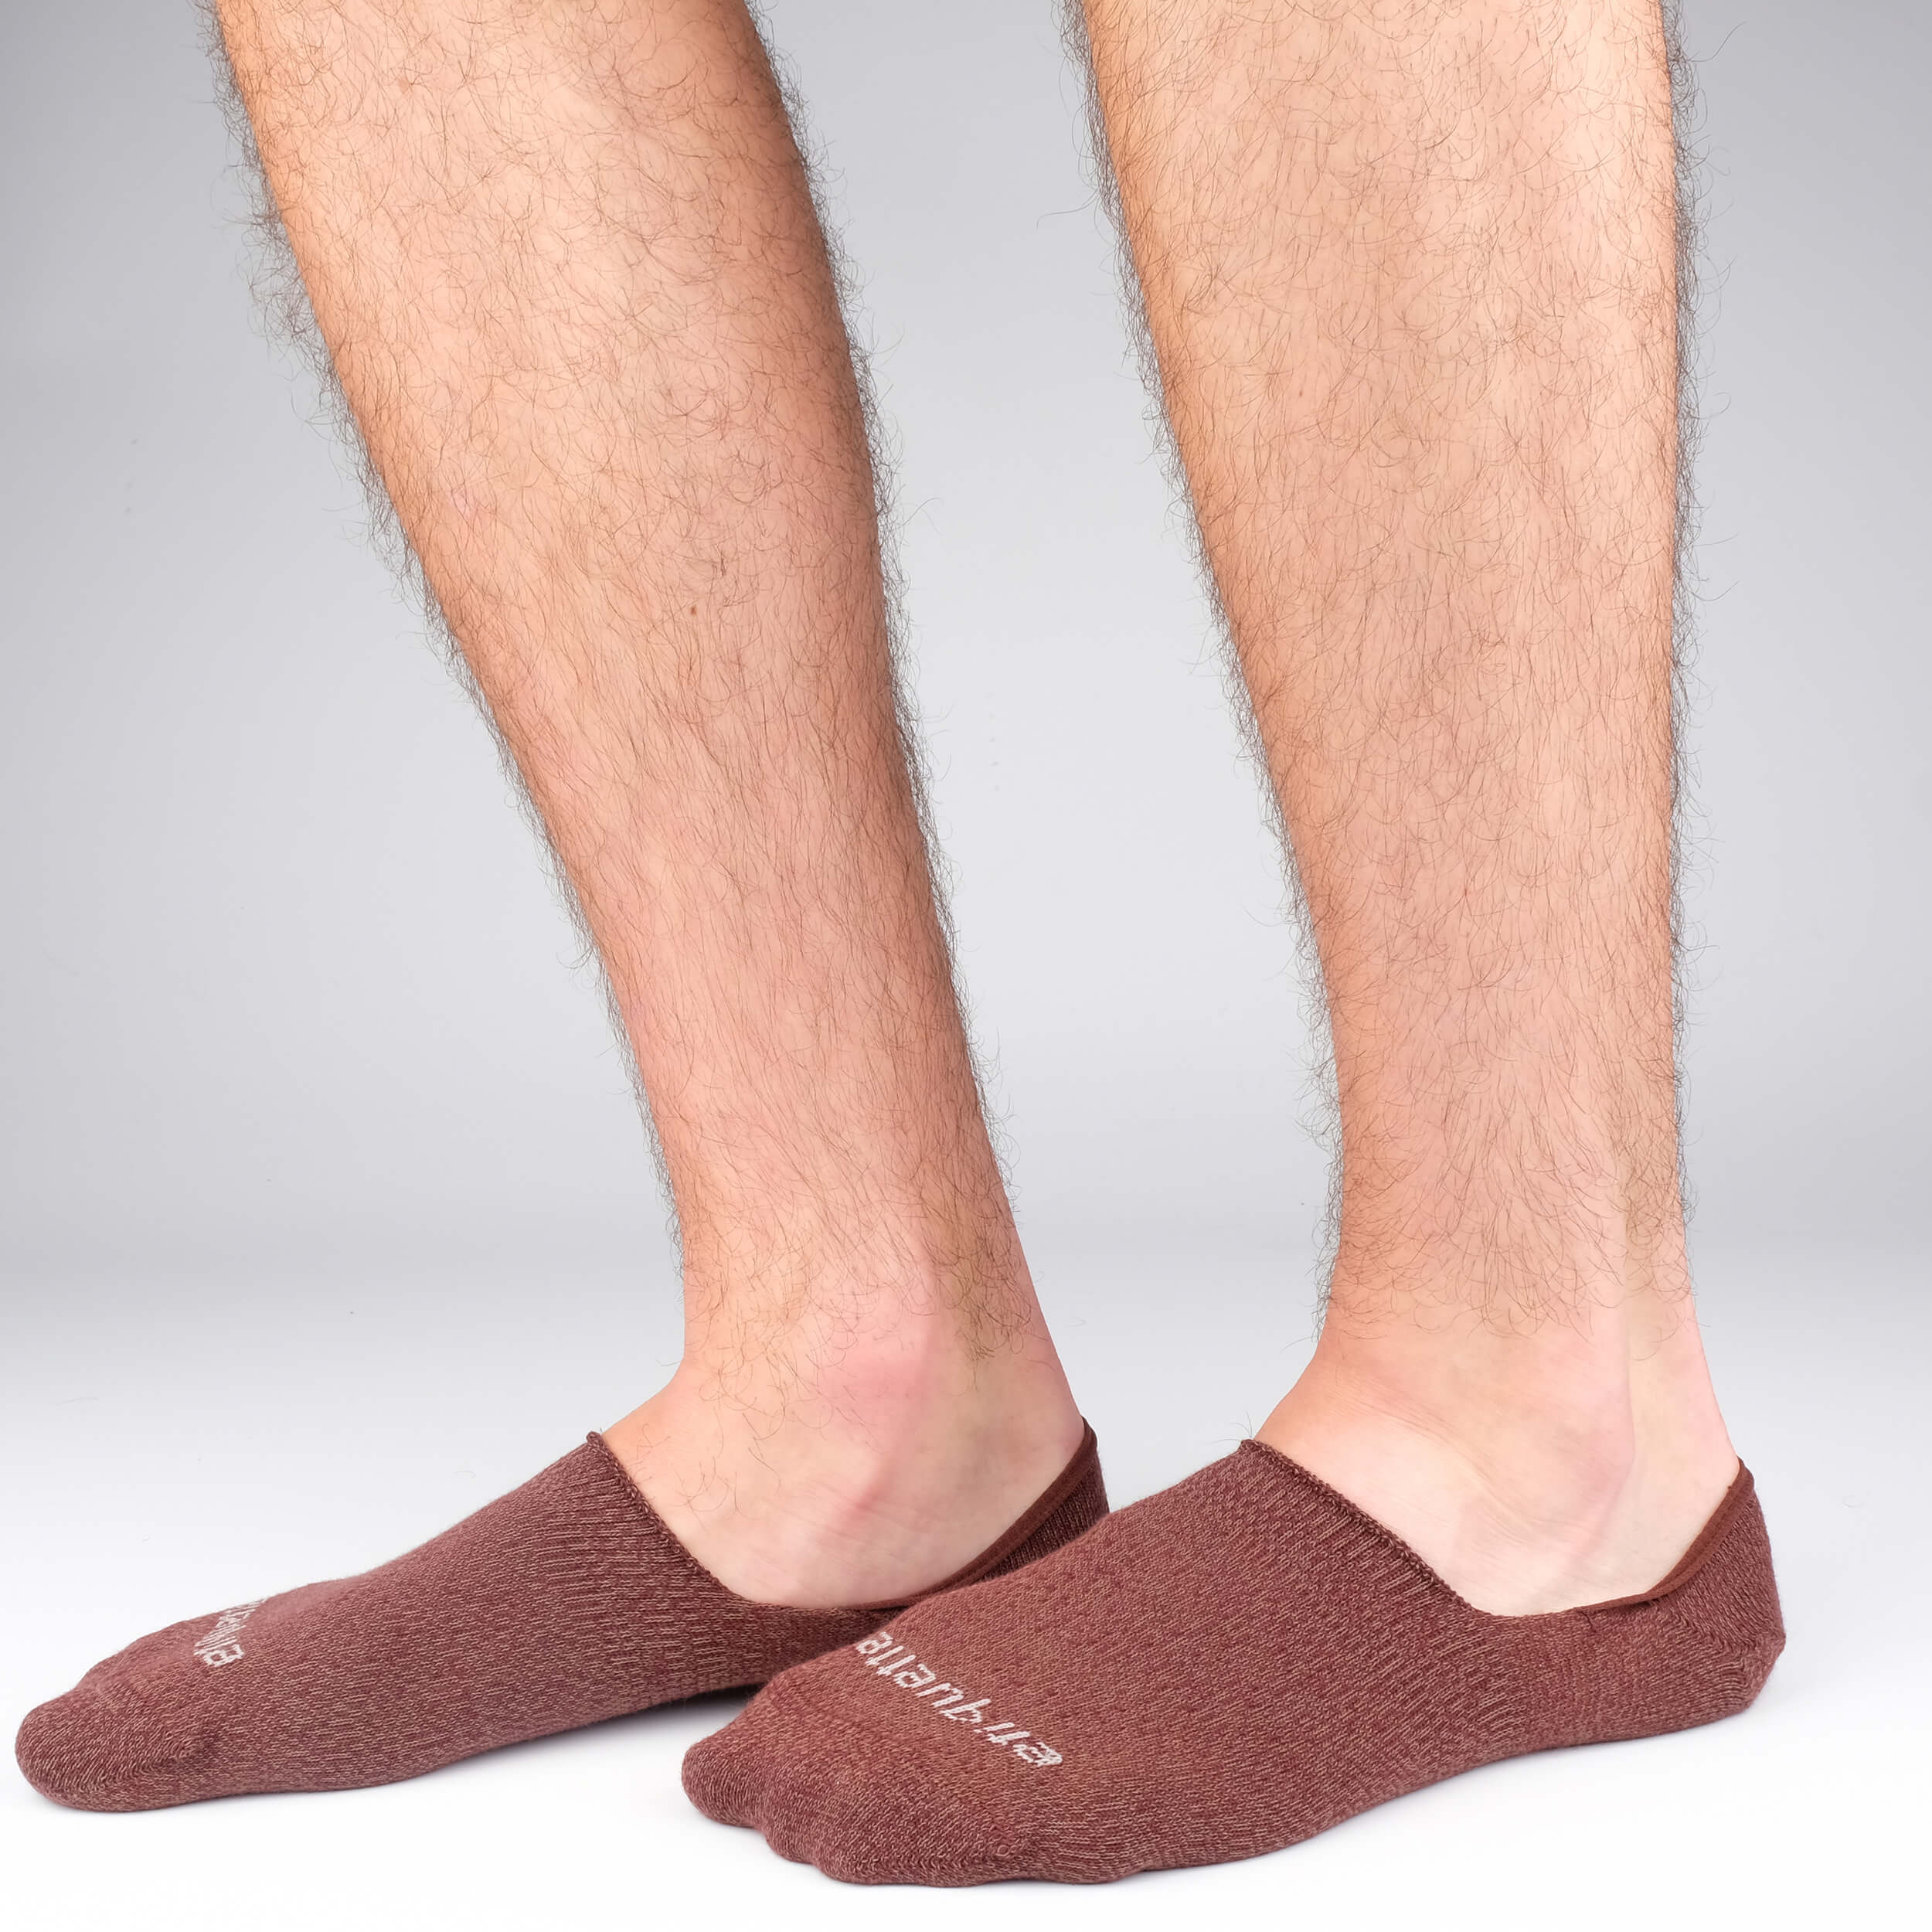 Mens Socks - Men's No Show Socks - Mouline Bordeaux⎪Etiquette Clothiers